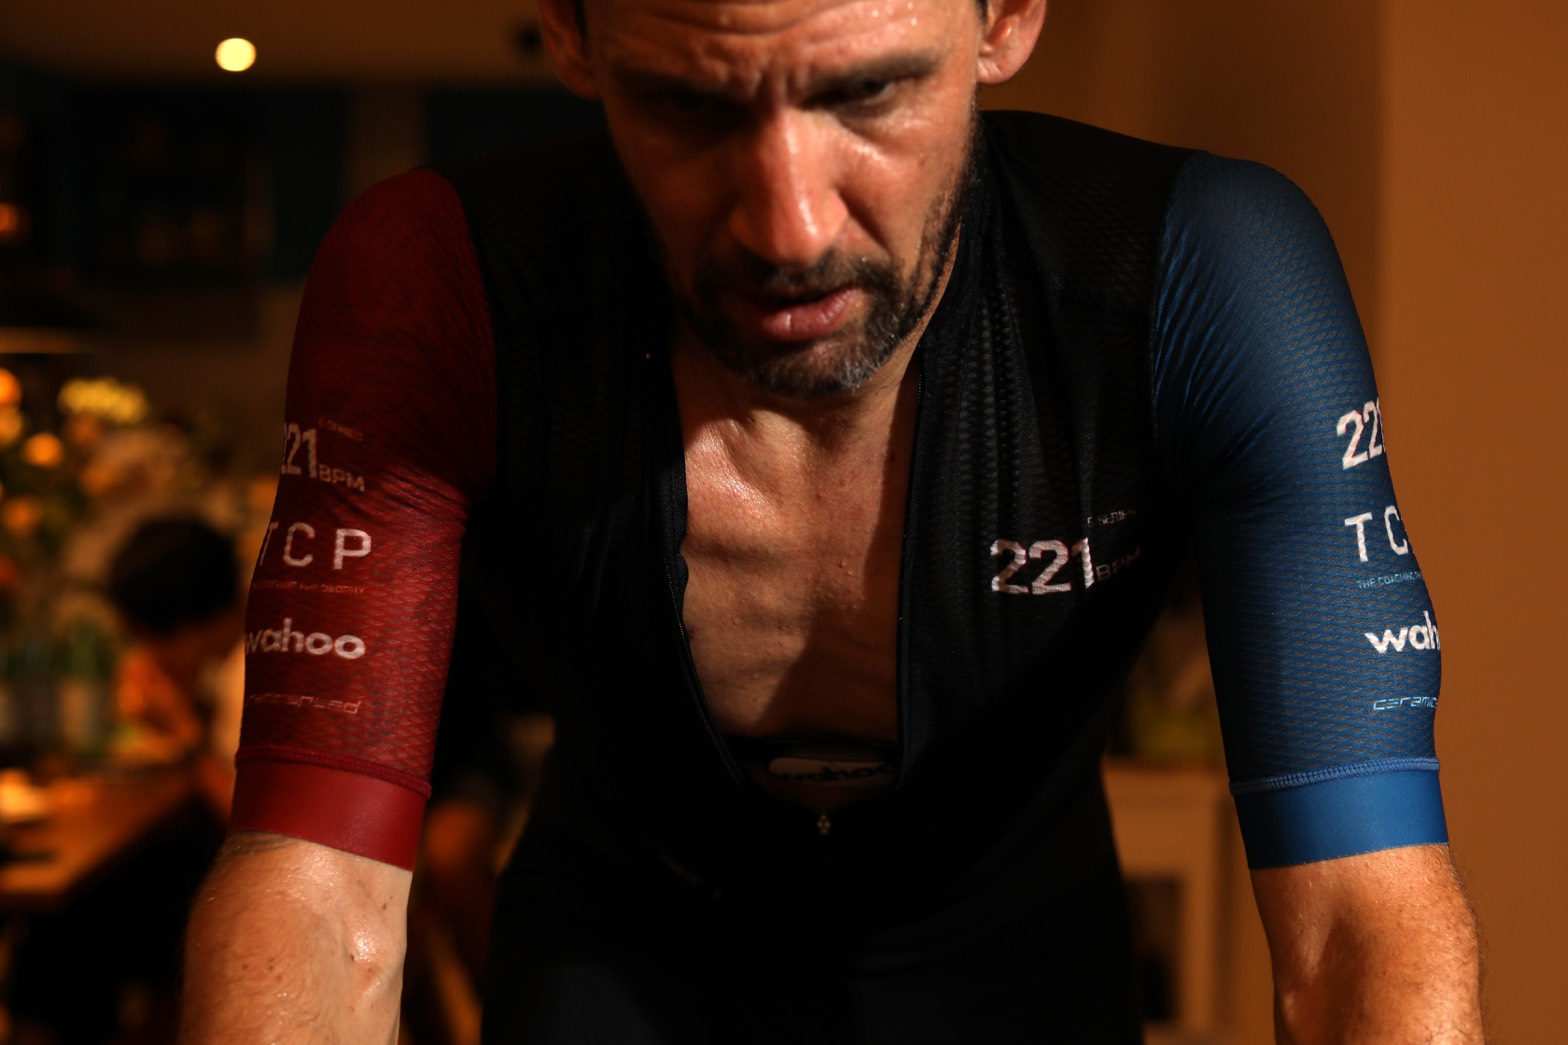 221 Bpm Cycling Apparel - INDOOR CYCLING JERSEY